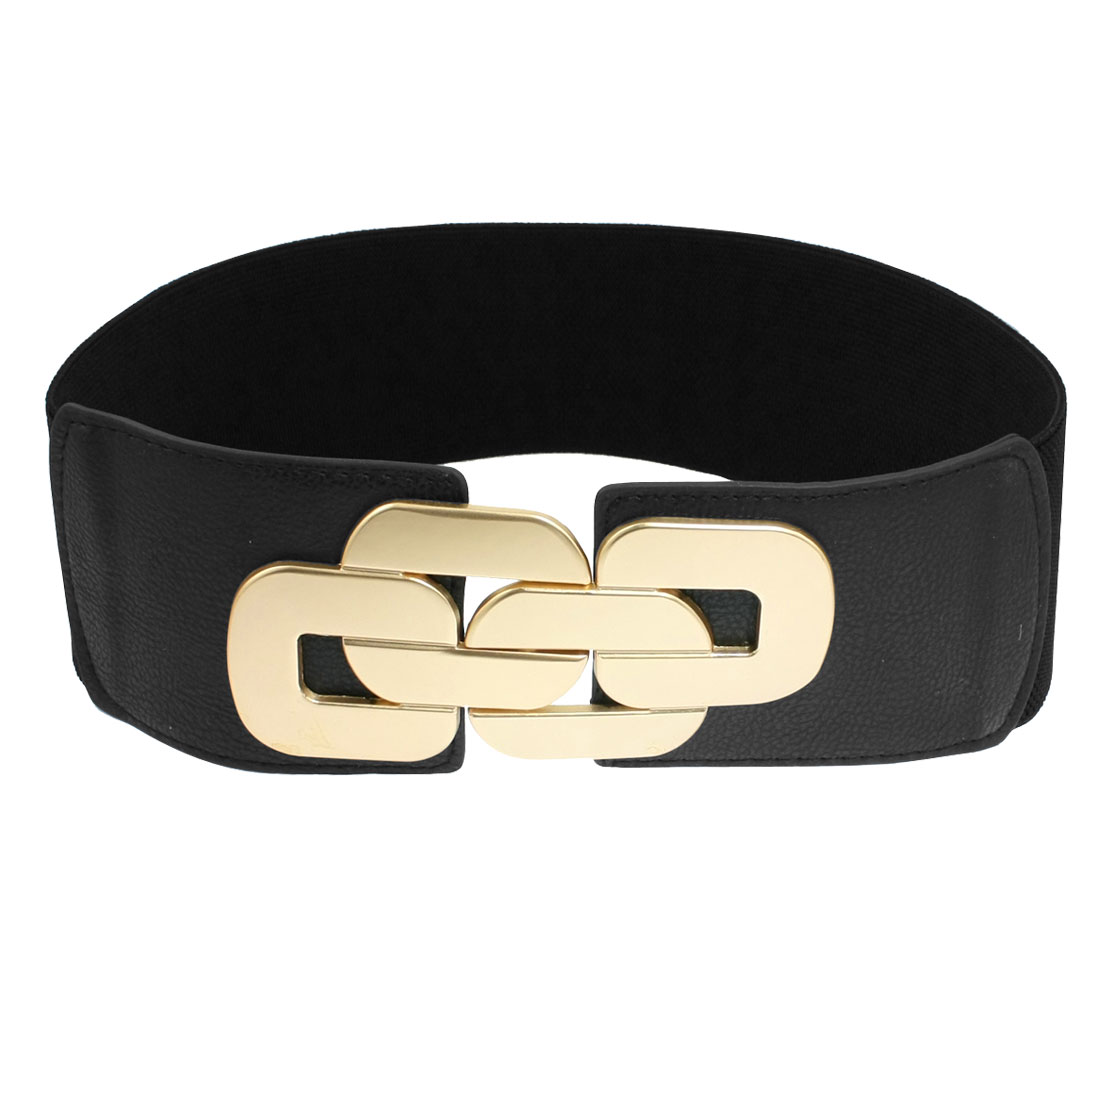 Gold Toen Metal Interlocking Buckle Black Elastic Waistband for Women